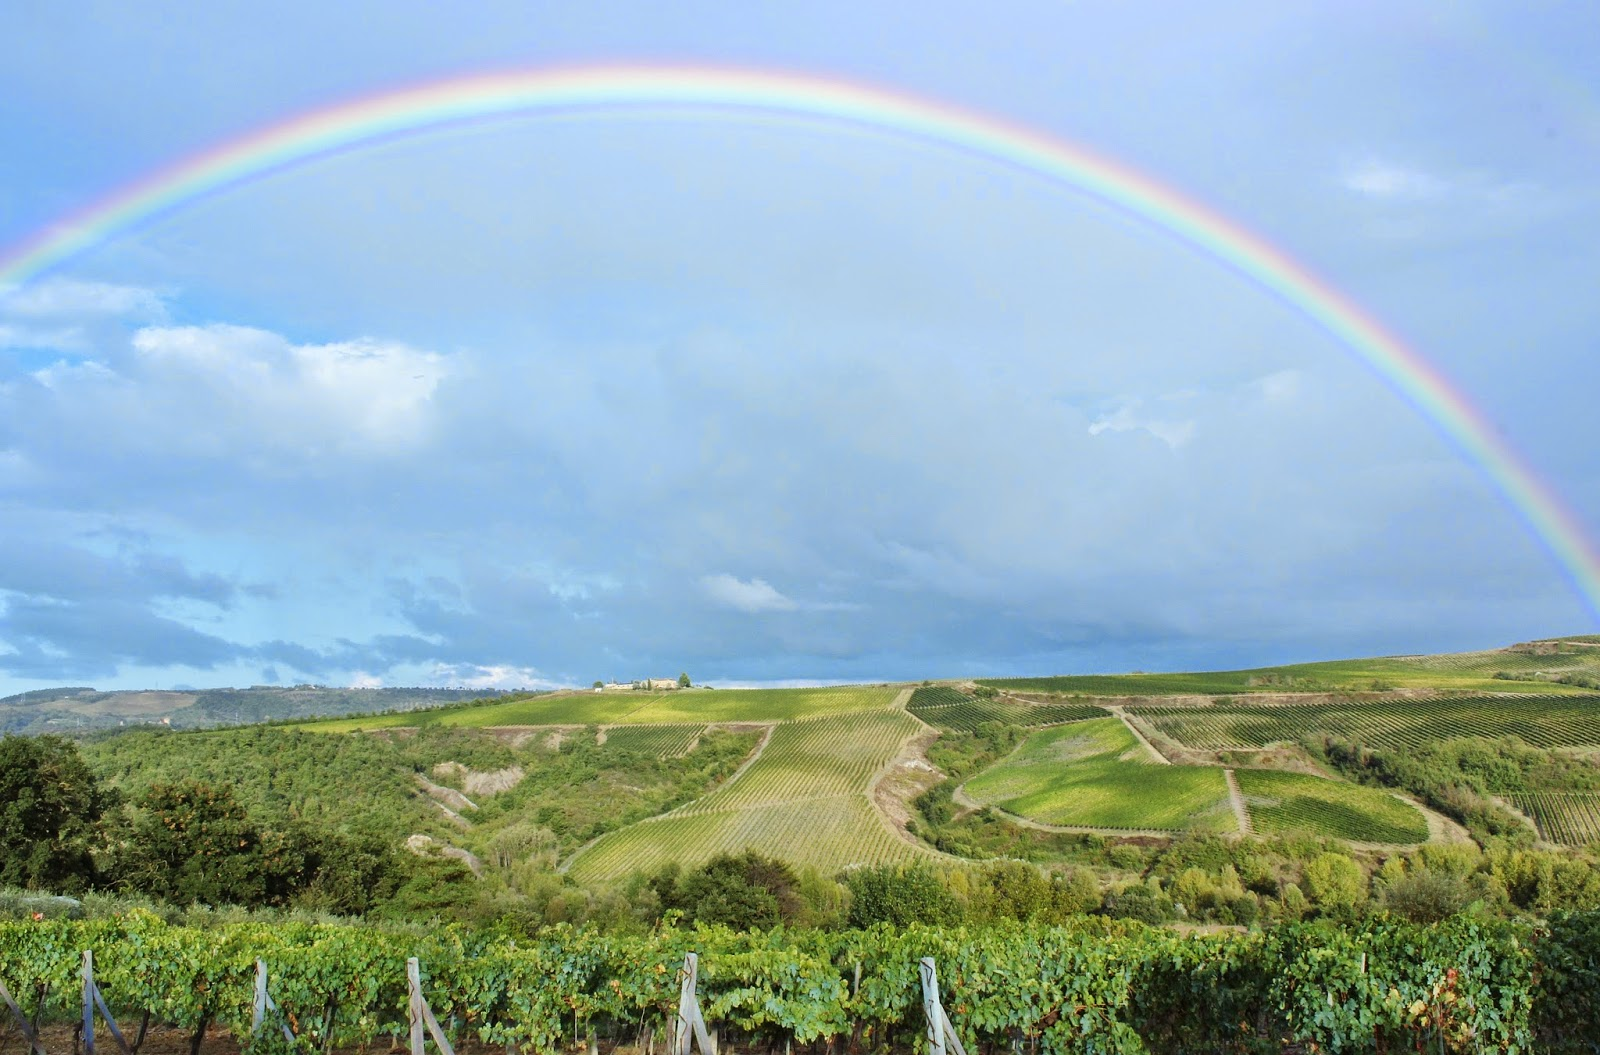 rainbow over vineyards in Orvieto Italy